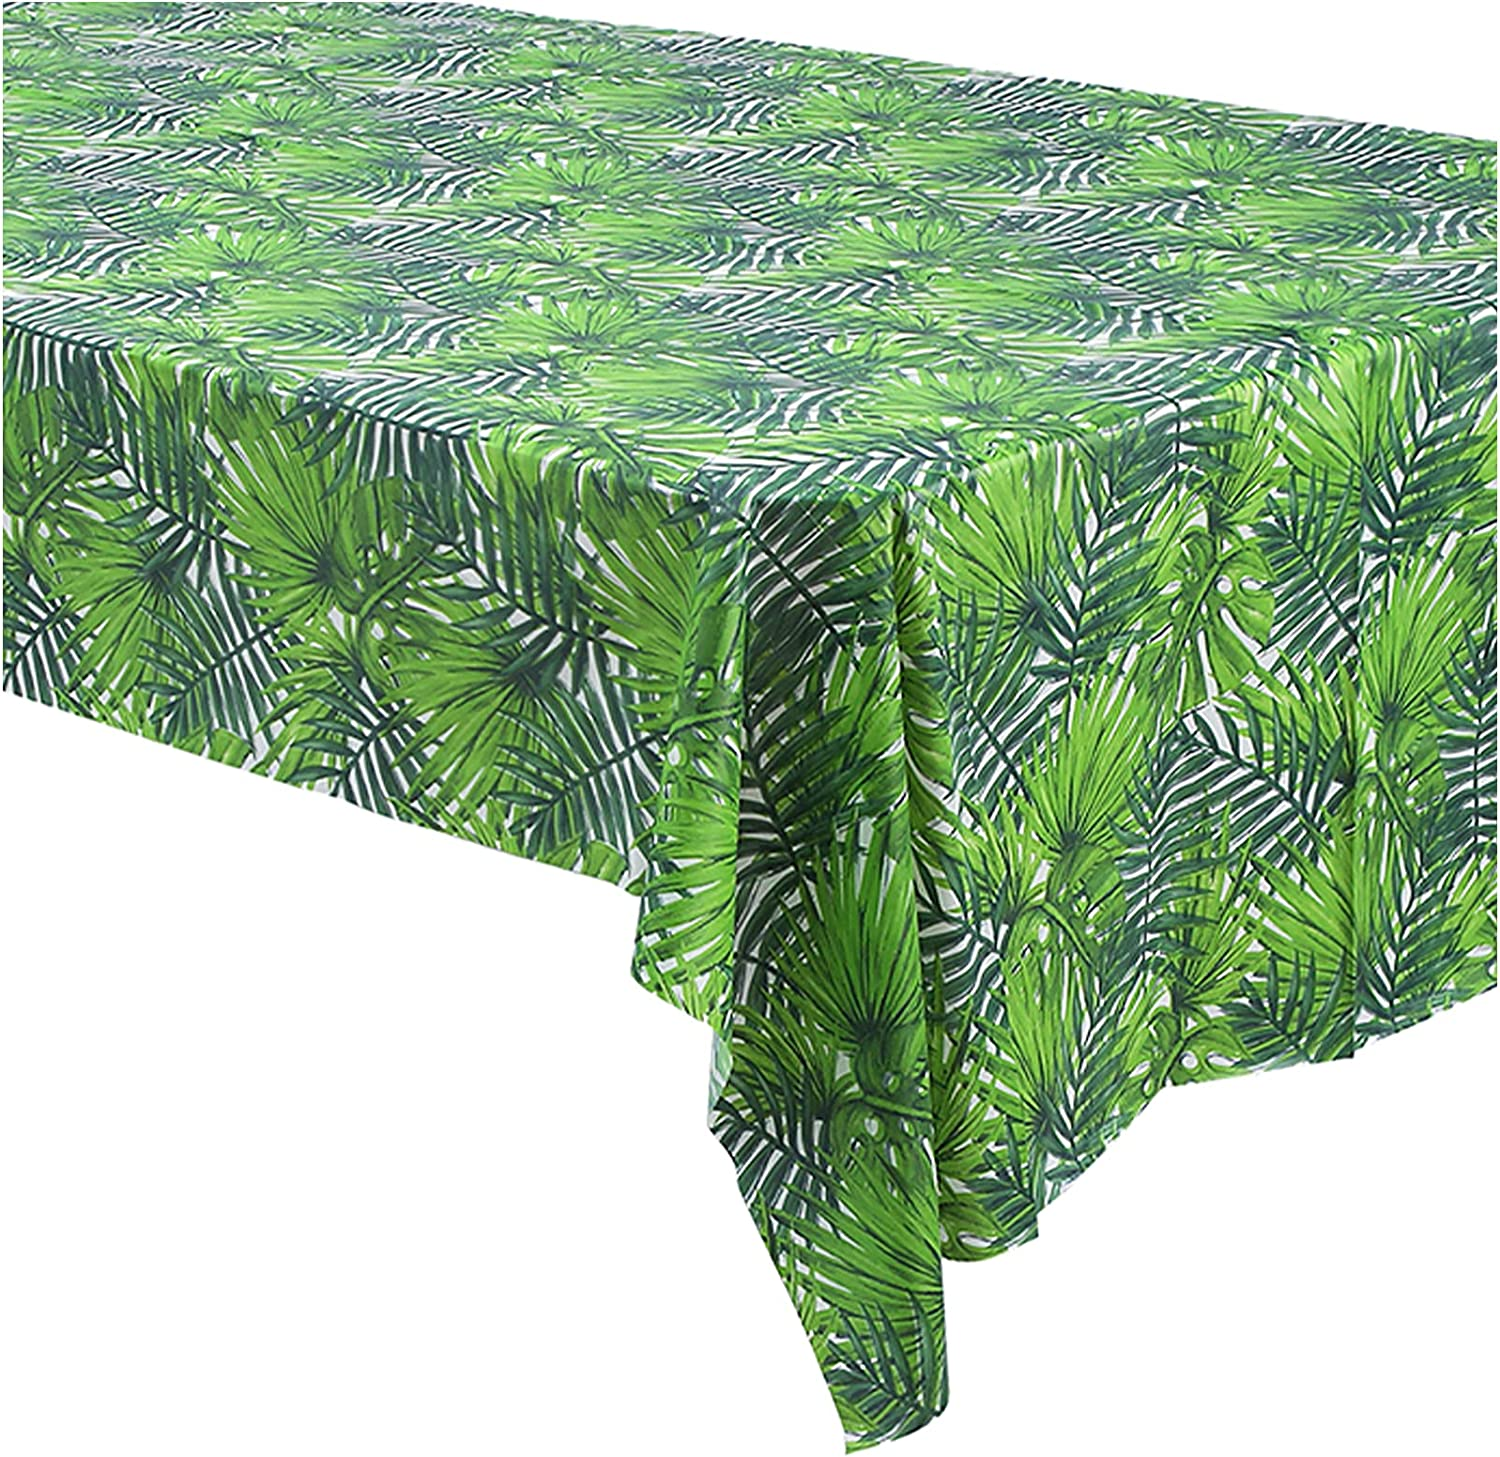 Summer Luau Max 81% OFF Green Palm wholesale Leaf Tablecloth Hawaii for Jungle 3 Pack